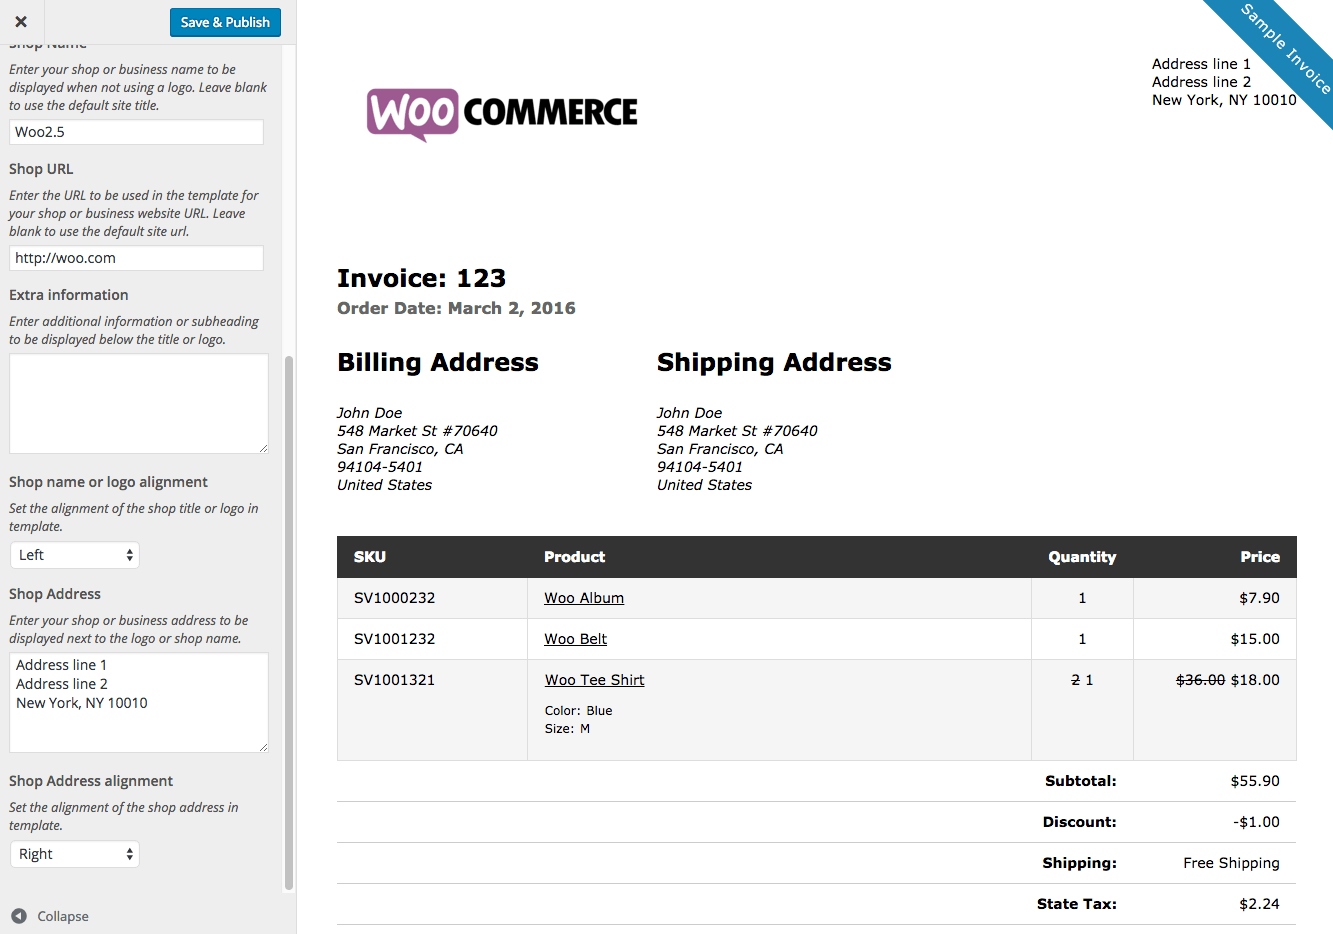 Modaoxus  Personable Woocommerce Print Invoices Amp Packing Lists  Woocommerce Docs With Fair Woocommerce Print Invoices  Packing Lists Customizer With Amazing Free Printable Business Invoices Also Please Find Attached The Invoice In Addition Reconciling Invoices And Bmw European Delivery Invoice Price As Well As What Should An Invoice Look Like Additionally Invoice Terms And Conditions Template From Docswoocommercecom With Modaoxus  Fair Woocommerce Print Invoices Amp Packing Lists  Woocommerce Docs With Amazing Woocommerce Print Invoices  Packing Lists Customizer And Personable Free Printable Business Invoices Also Please Find Attached The Invoice In Addition Reconciling Invoices From Docswoocommercecom